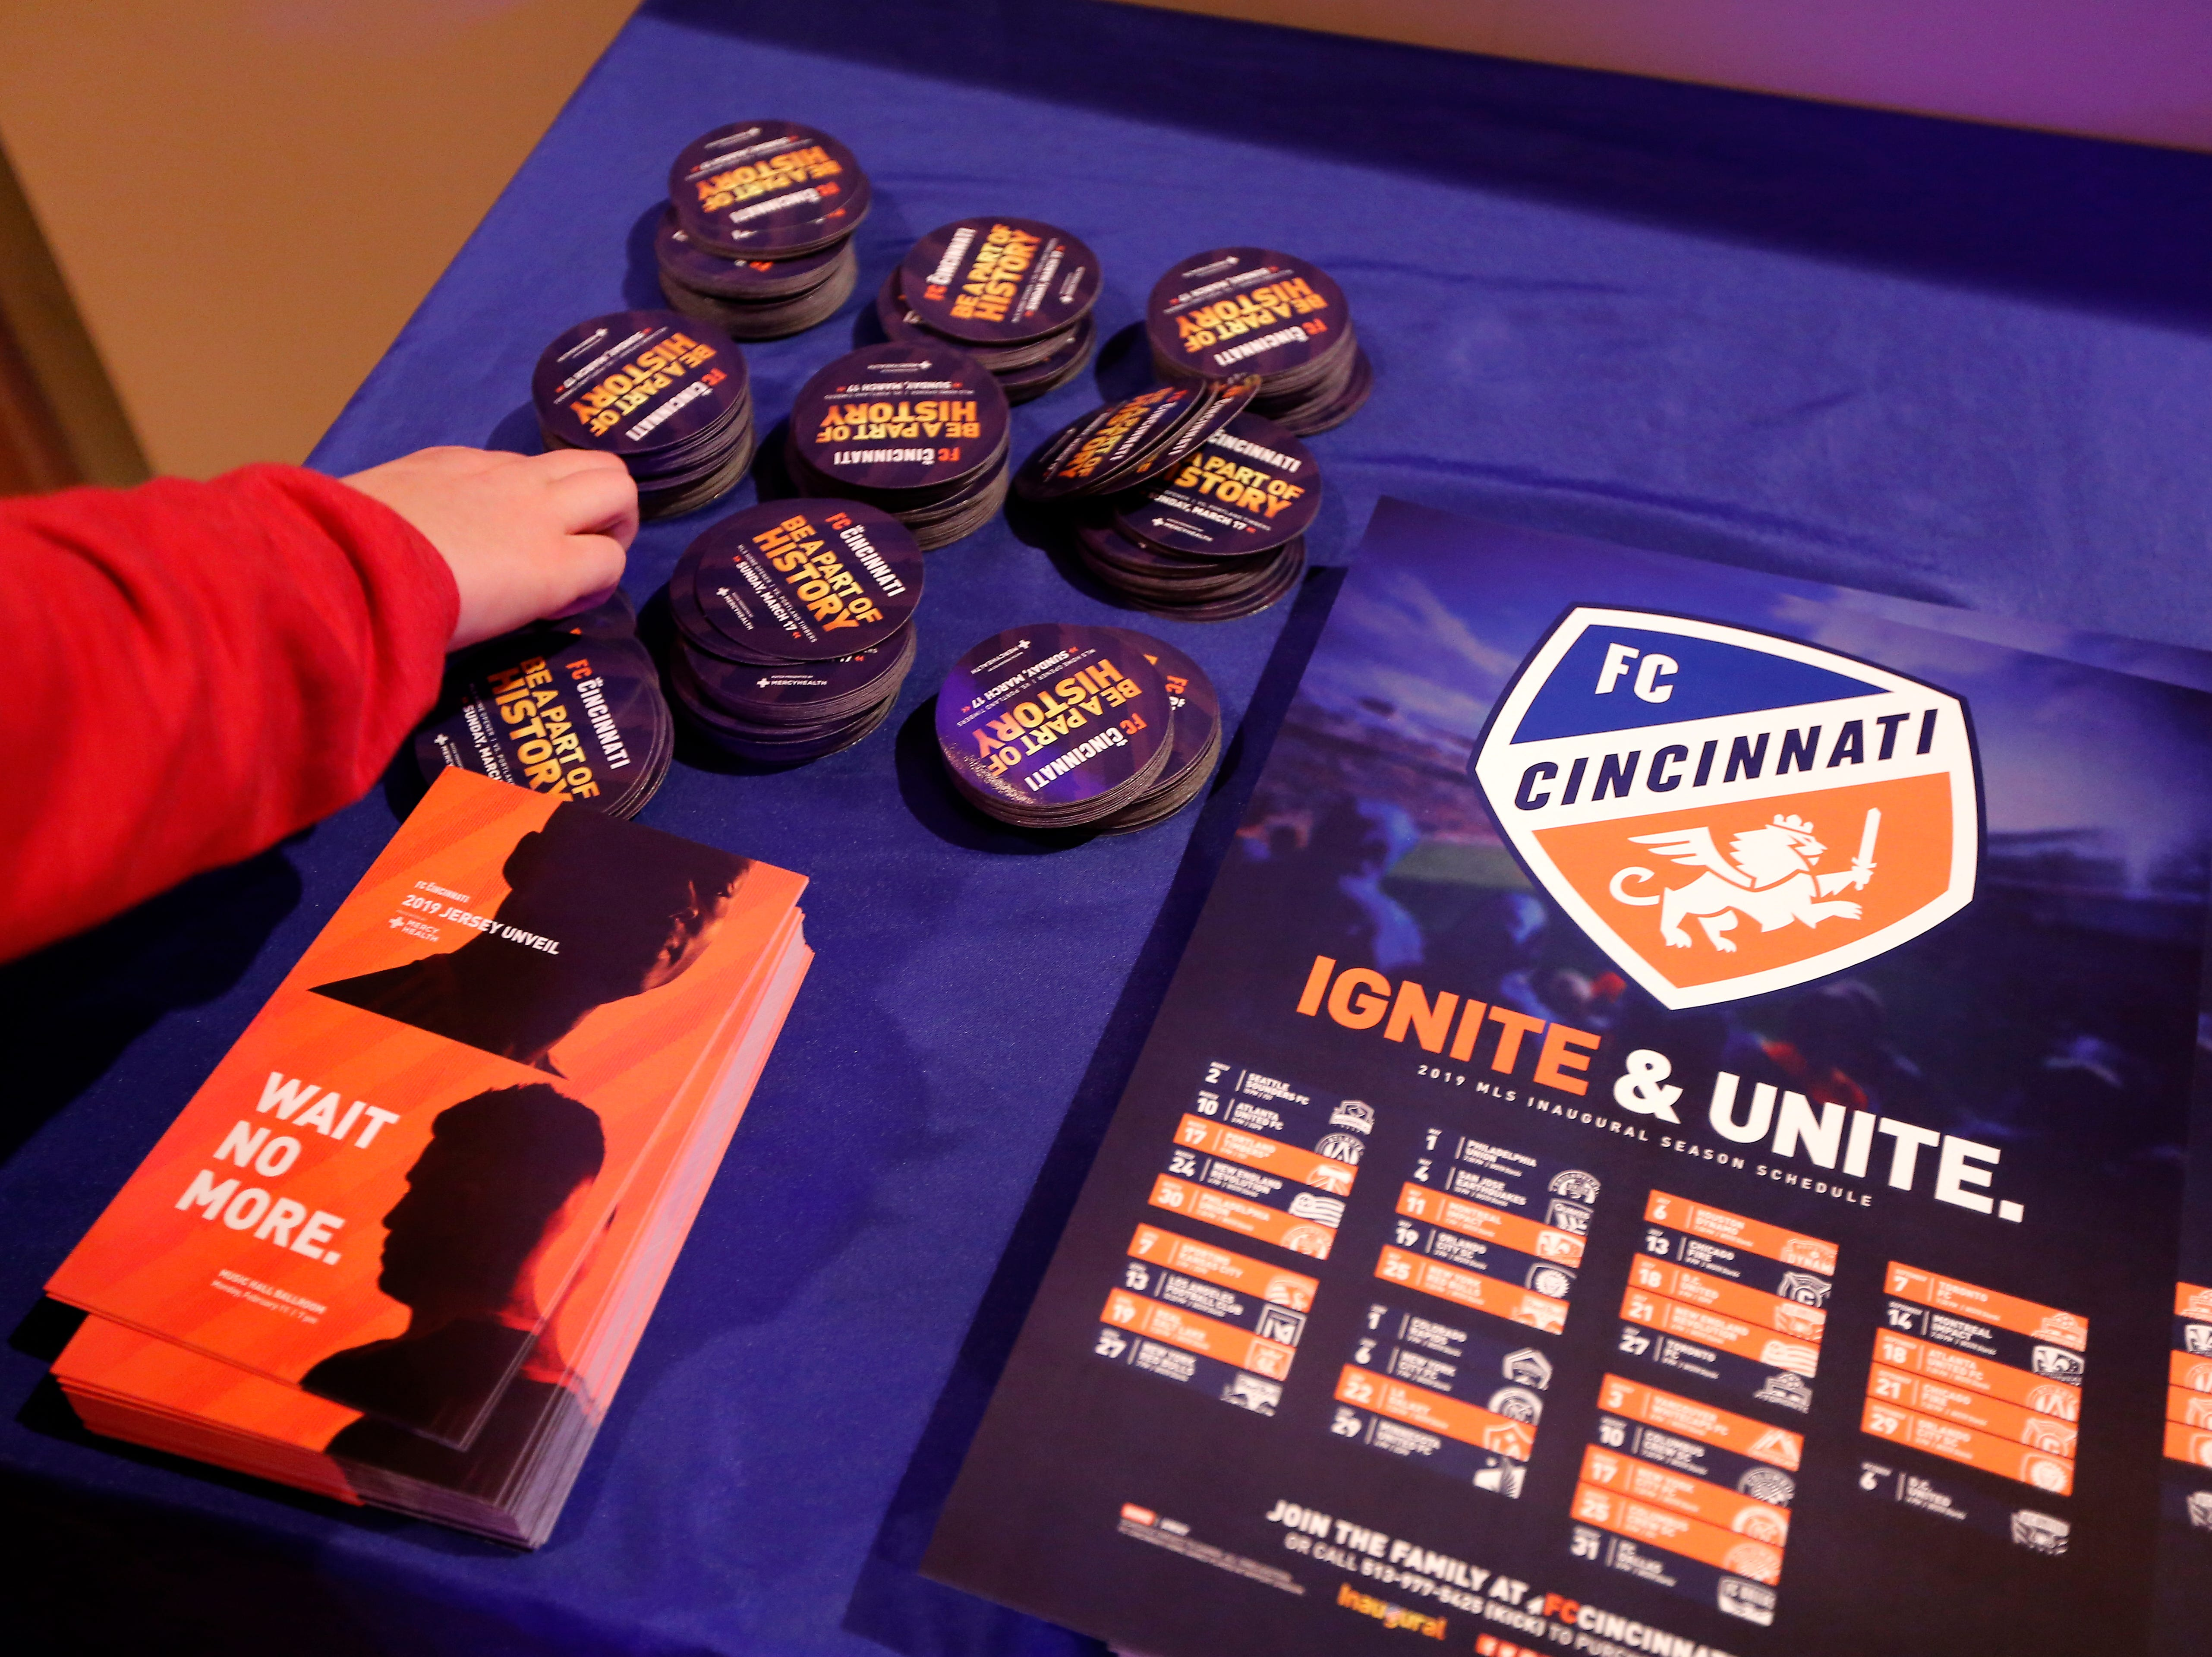 Fans grab flyers and posters during an event to unveil FC Cincinnati's jersey for the team's inaugural season in Major League Soccer at the Music Hall Ballroom in the Over-the-Rhine neighborhood of Cincinnati on Monday, Feb. 11, 2019.